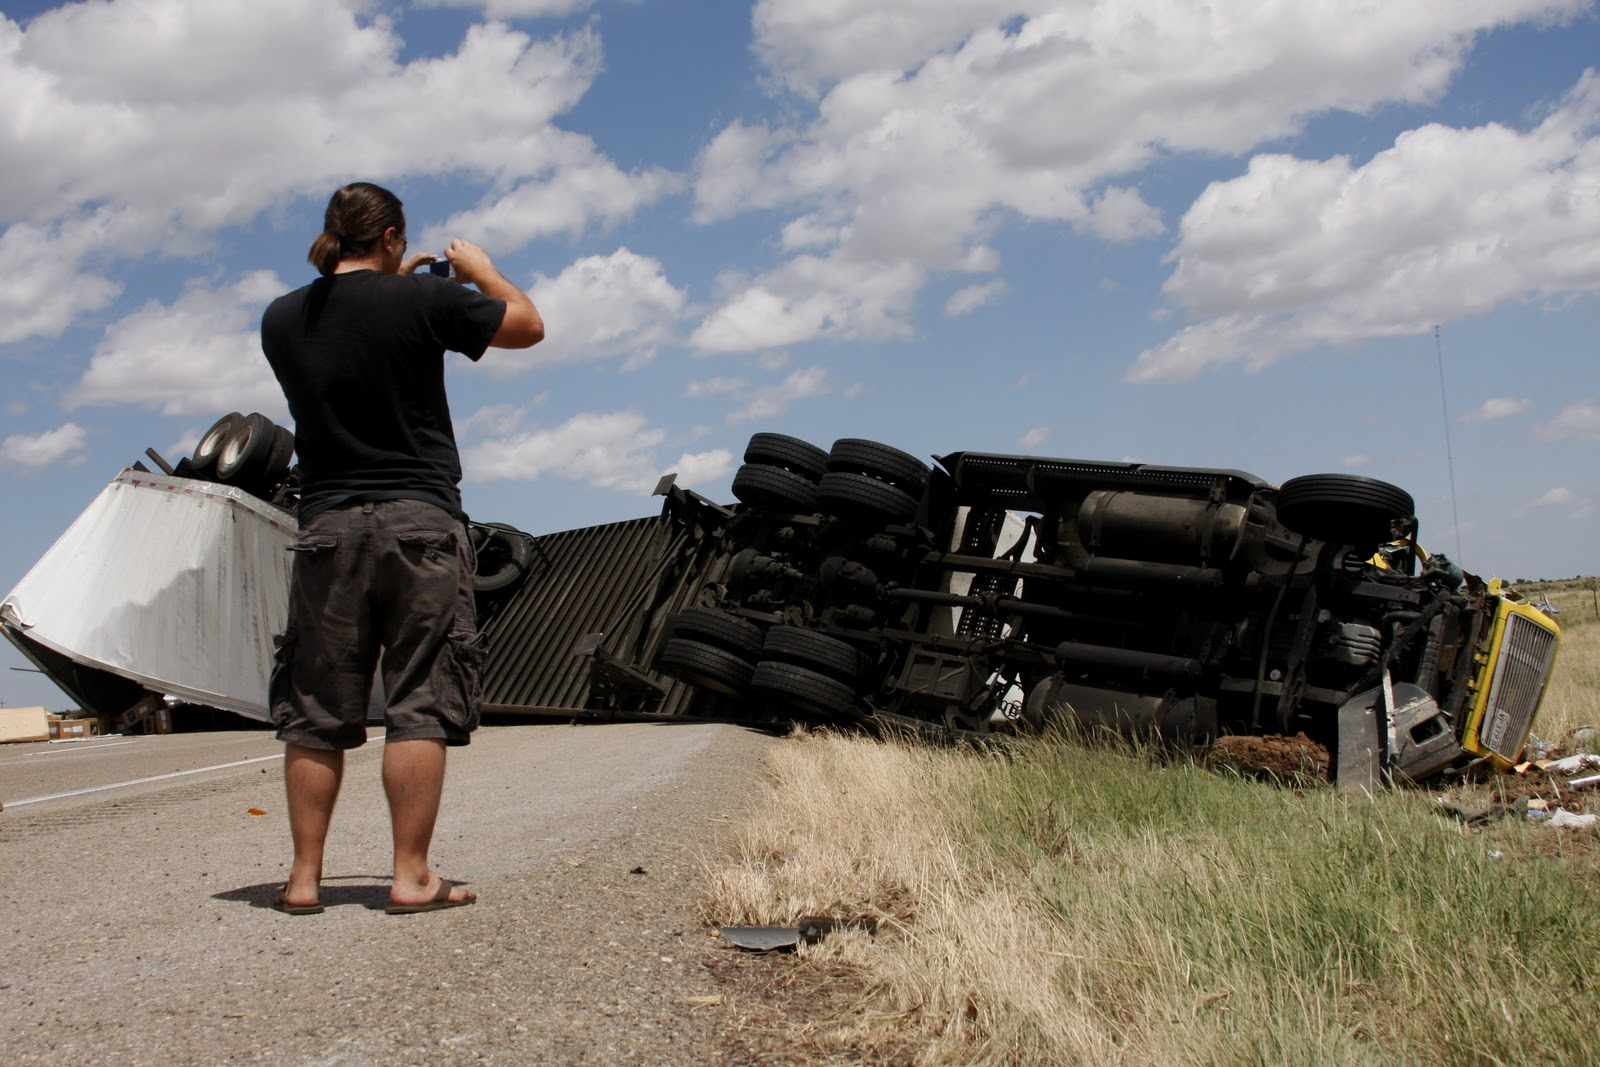 New mexico guadalupe county santa rosa - A Semi Trailer Heading East On Interstate 40 Collides With A Ford Explorer 5 Miles West Of Santa Rosa New Mexico July 25 The Guadalupe County